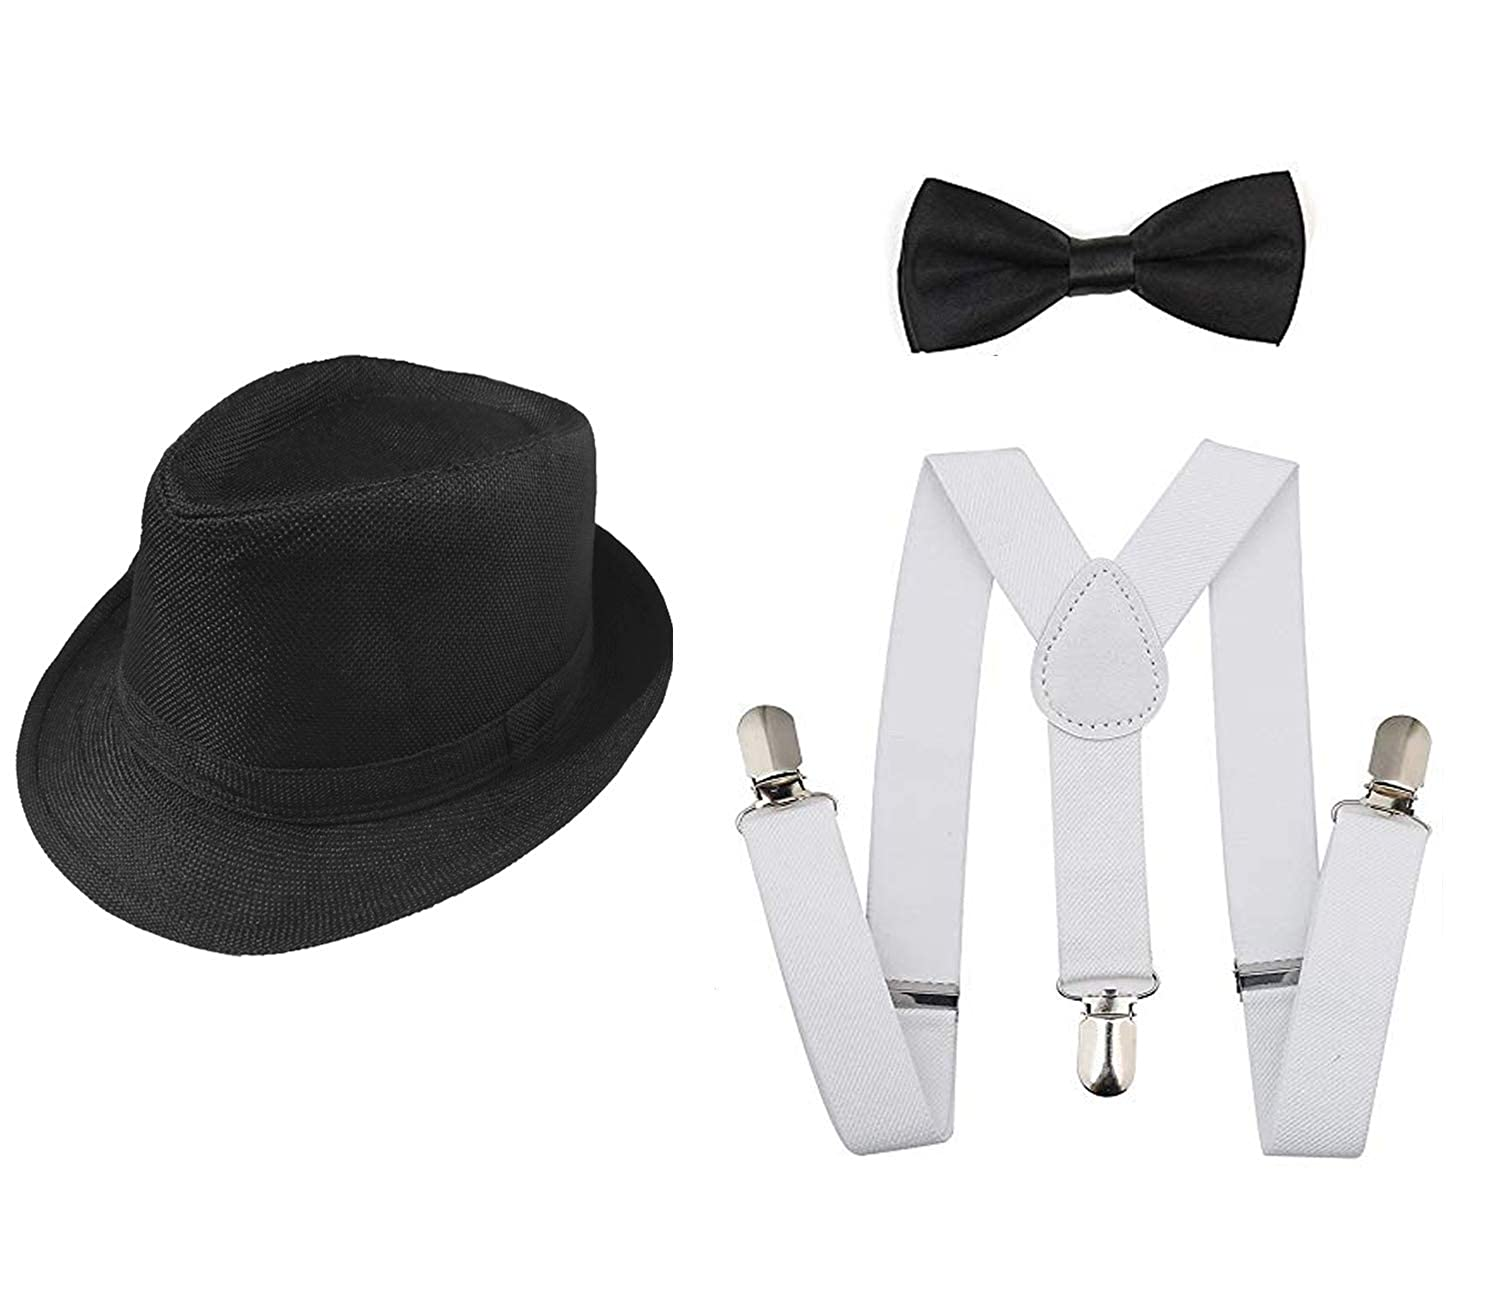 c46675c9087 Amazon.com  1920s Set Fedora Gangster Hat Costume Accessory Y-Back  Suspenders   Pre Tied Bow Tie